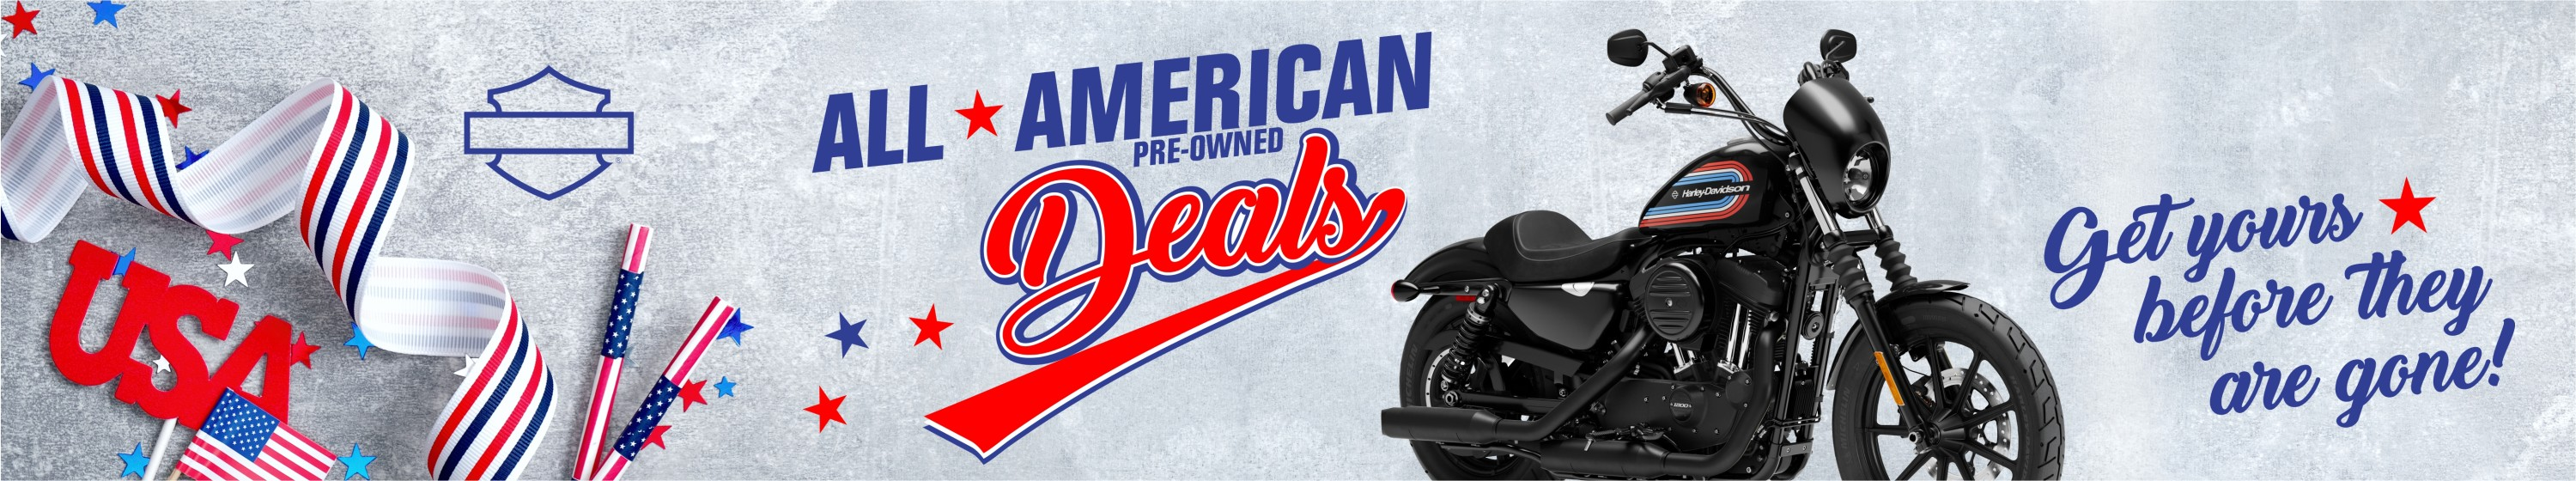 ALL AMERICAN PRE-OWNED DEALS